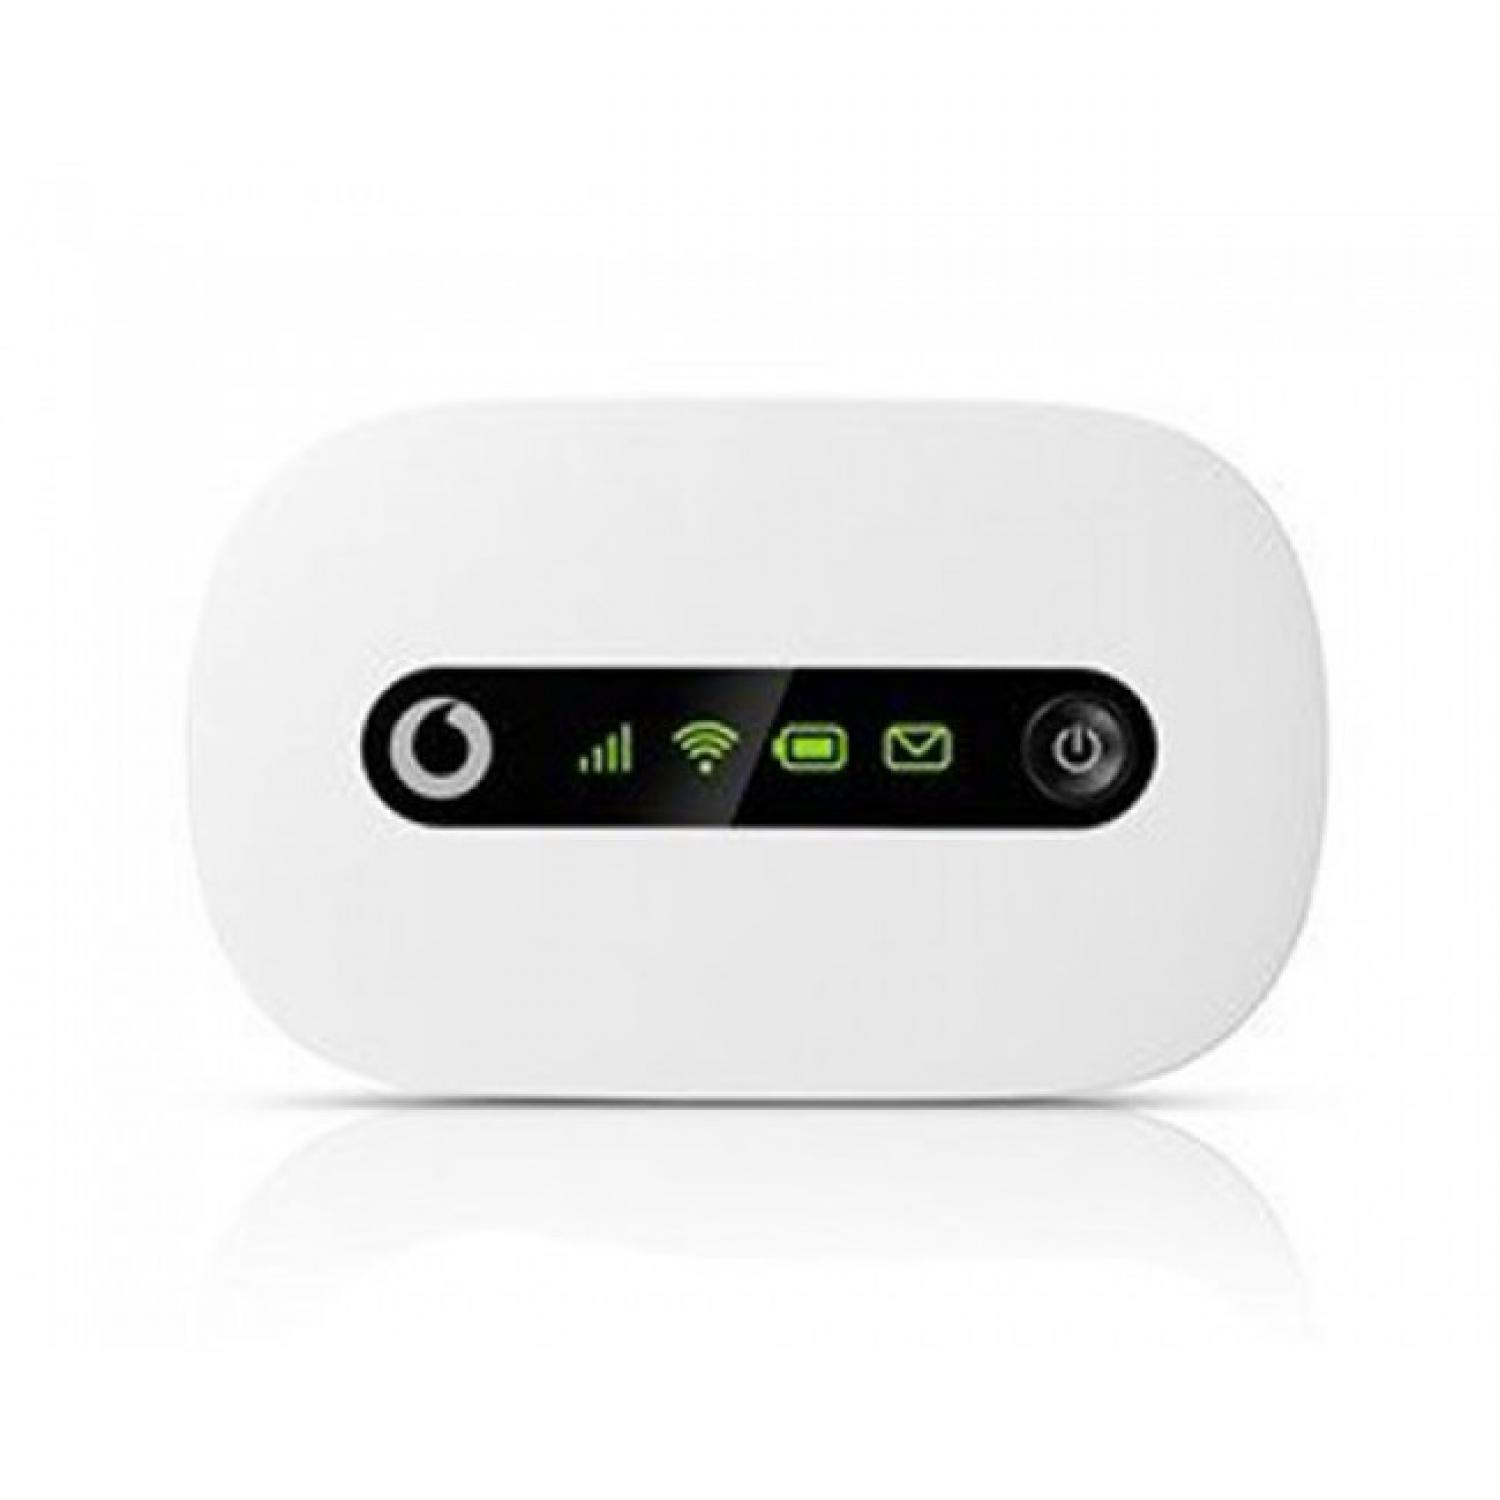 Huawei R206 Mobile Hotspot HSPA+ 21Mbps 14 DAYS